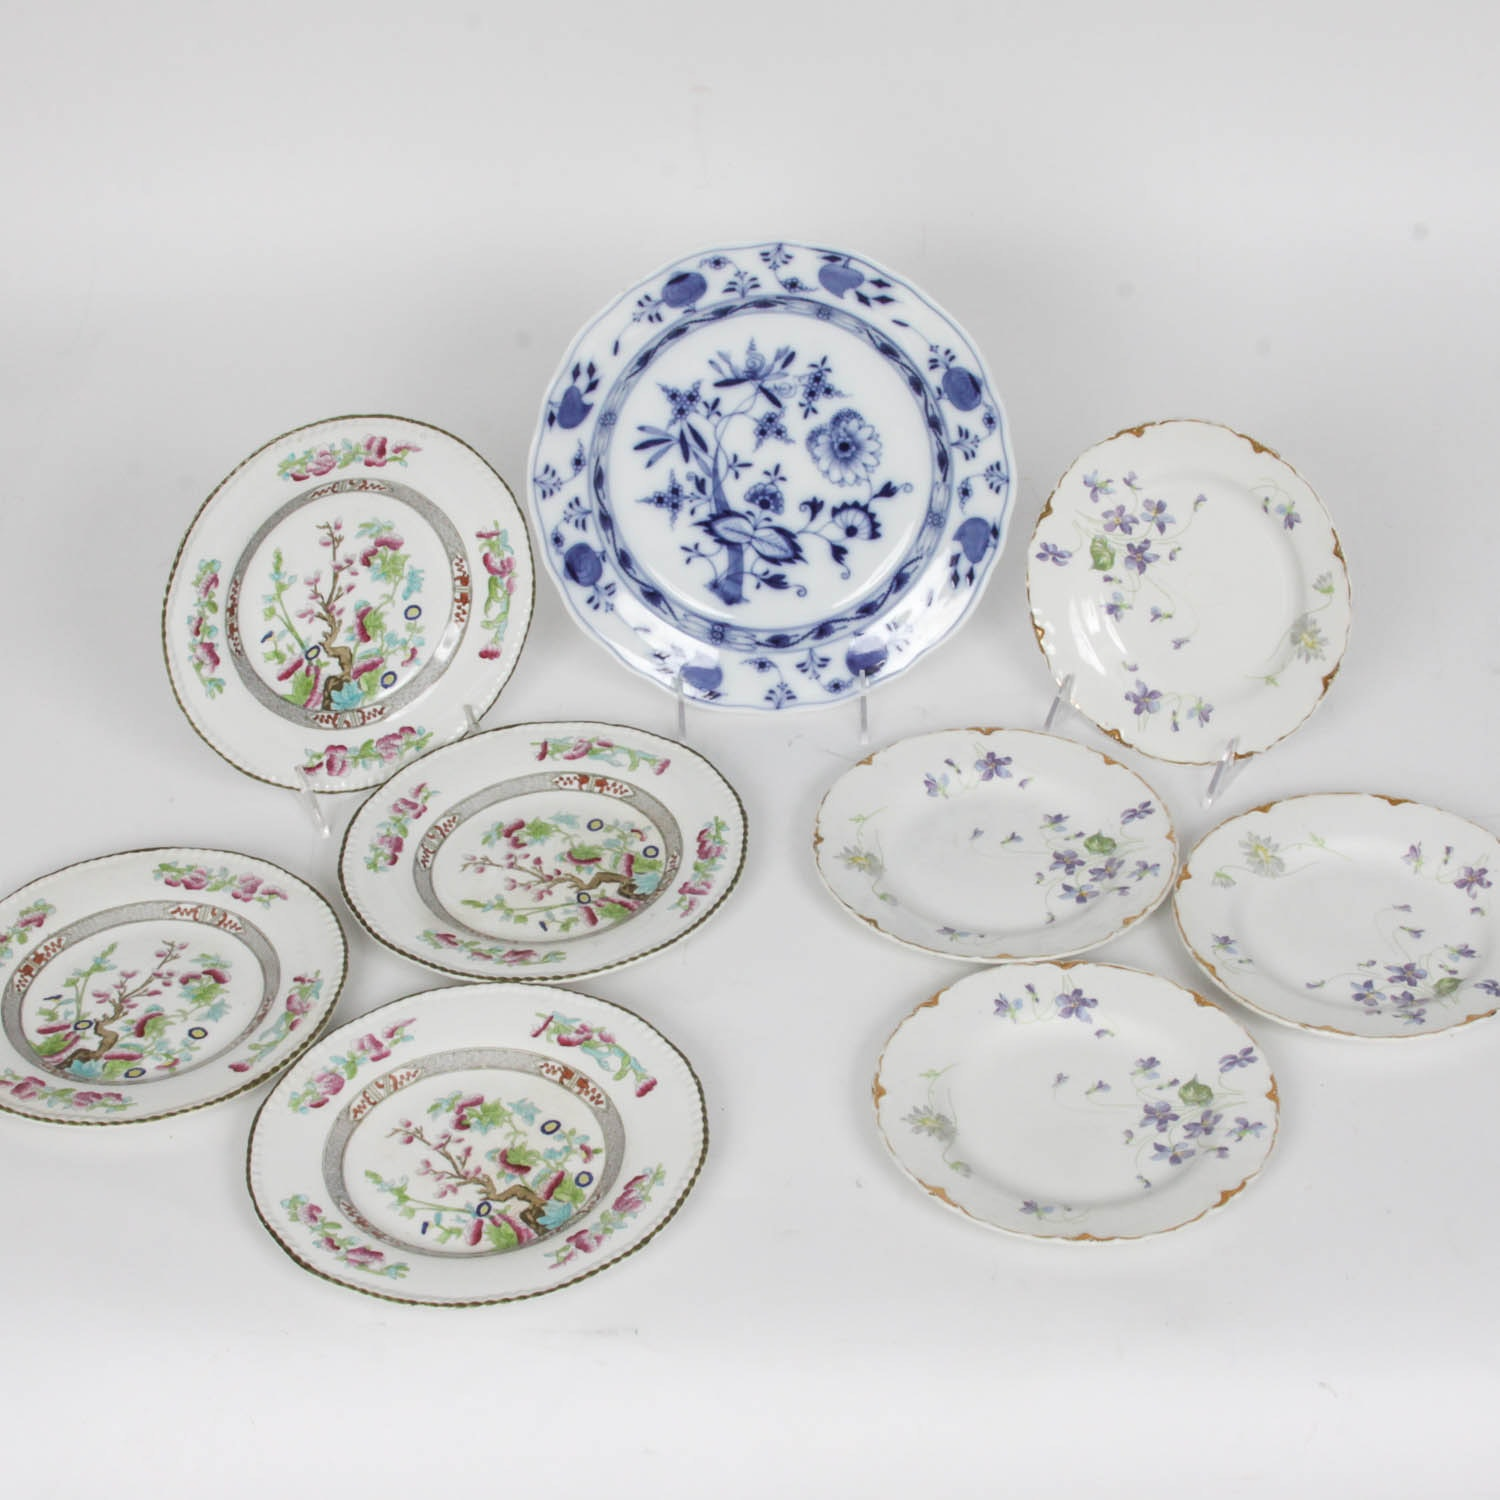 Collection of Floral China Plates